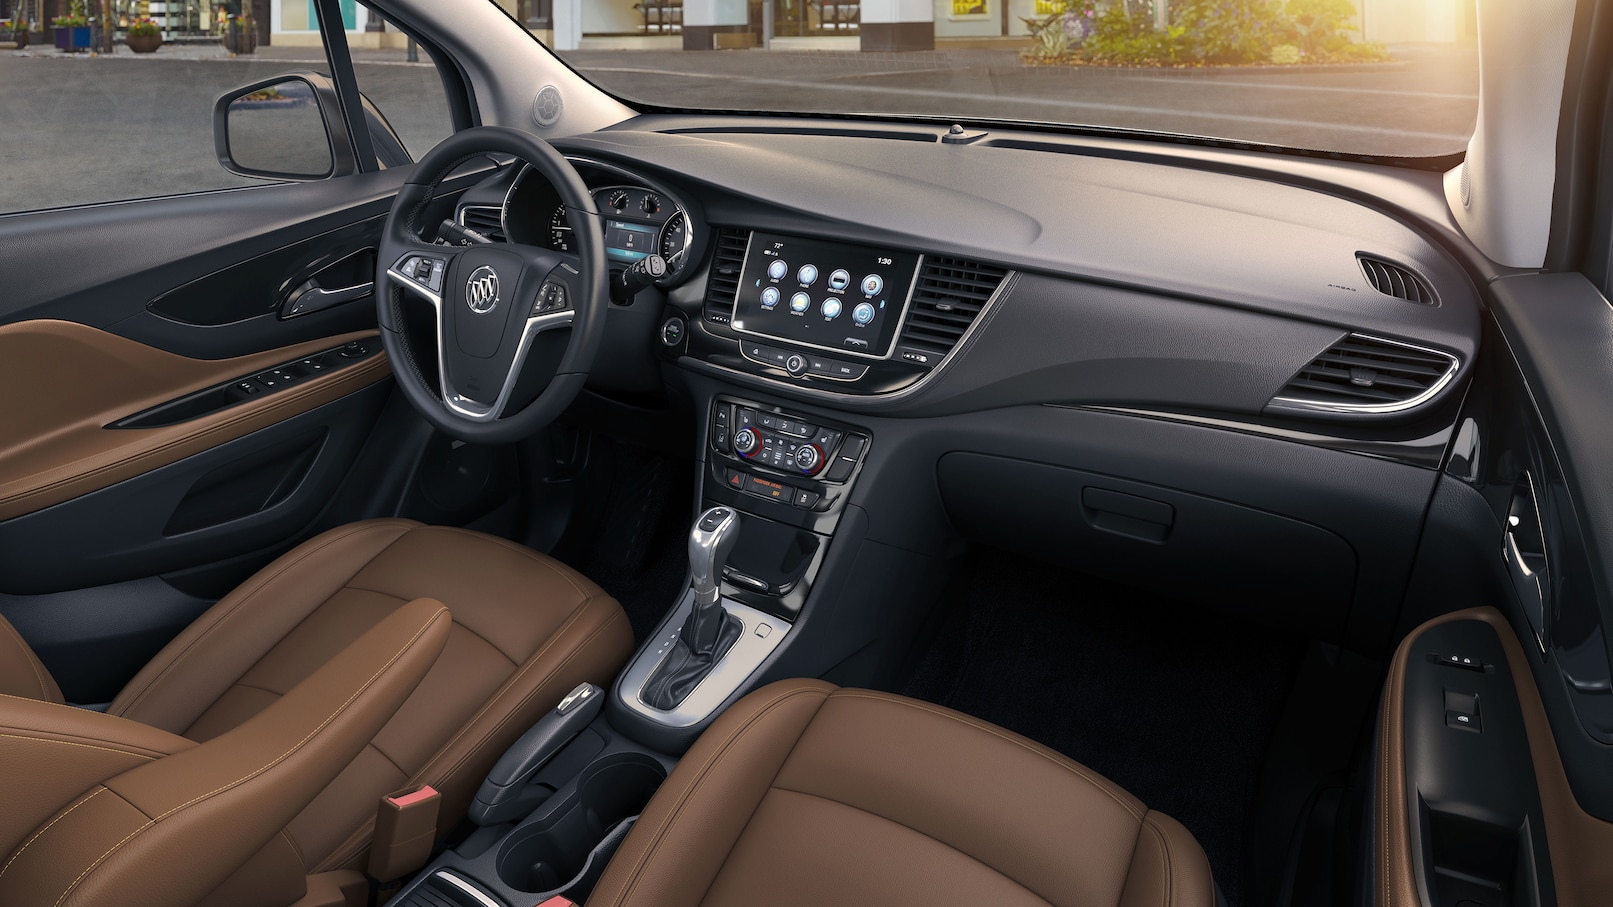 Upscale Cabin of the 2019 Encore